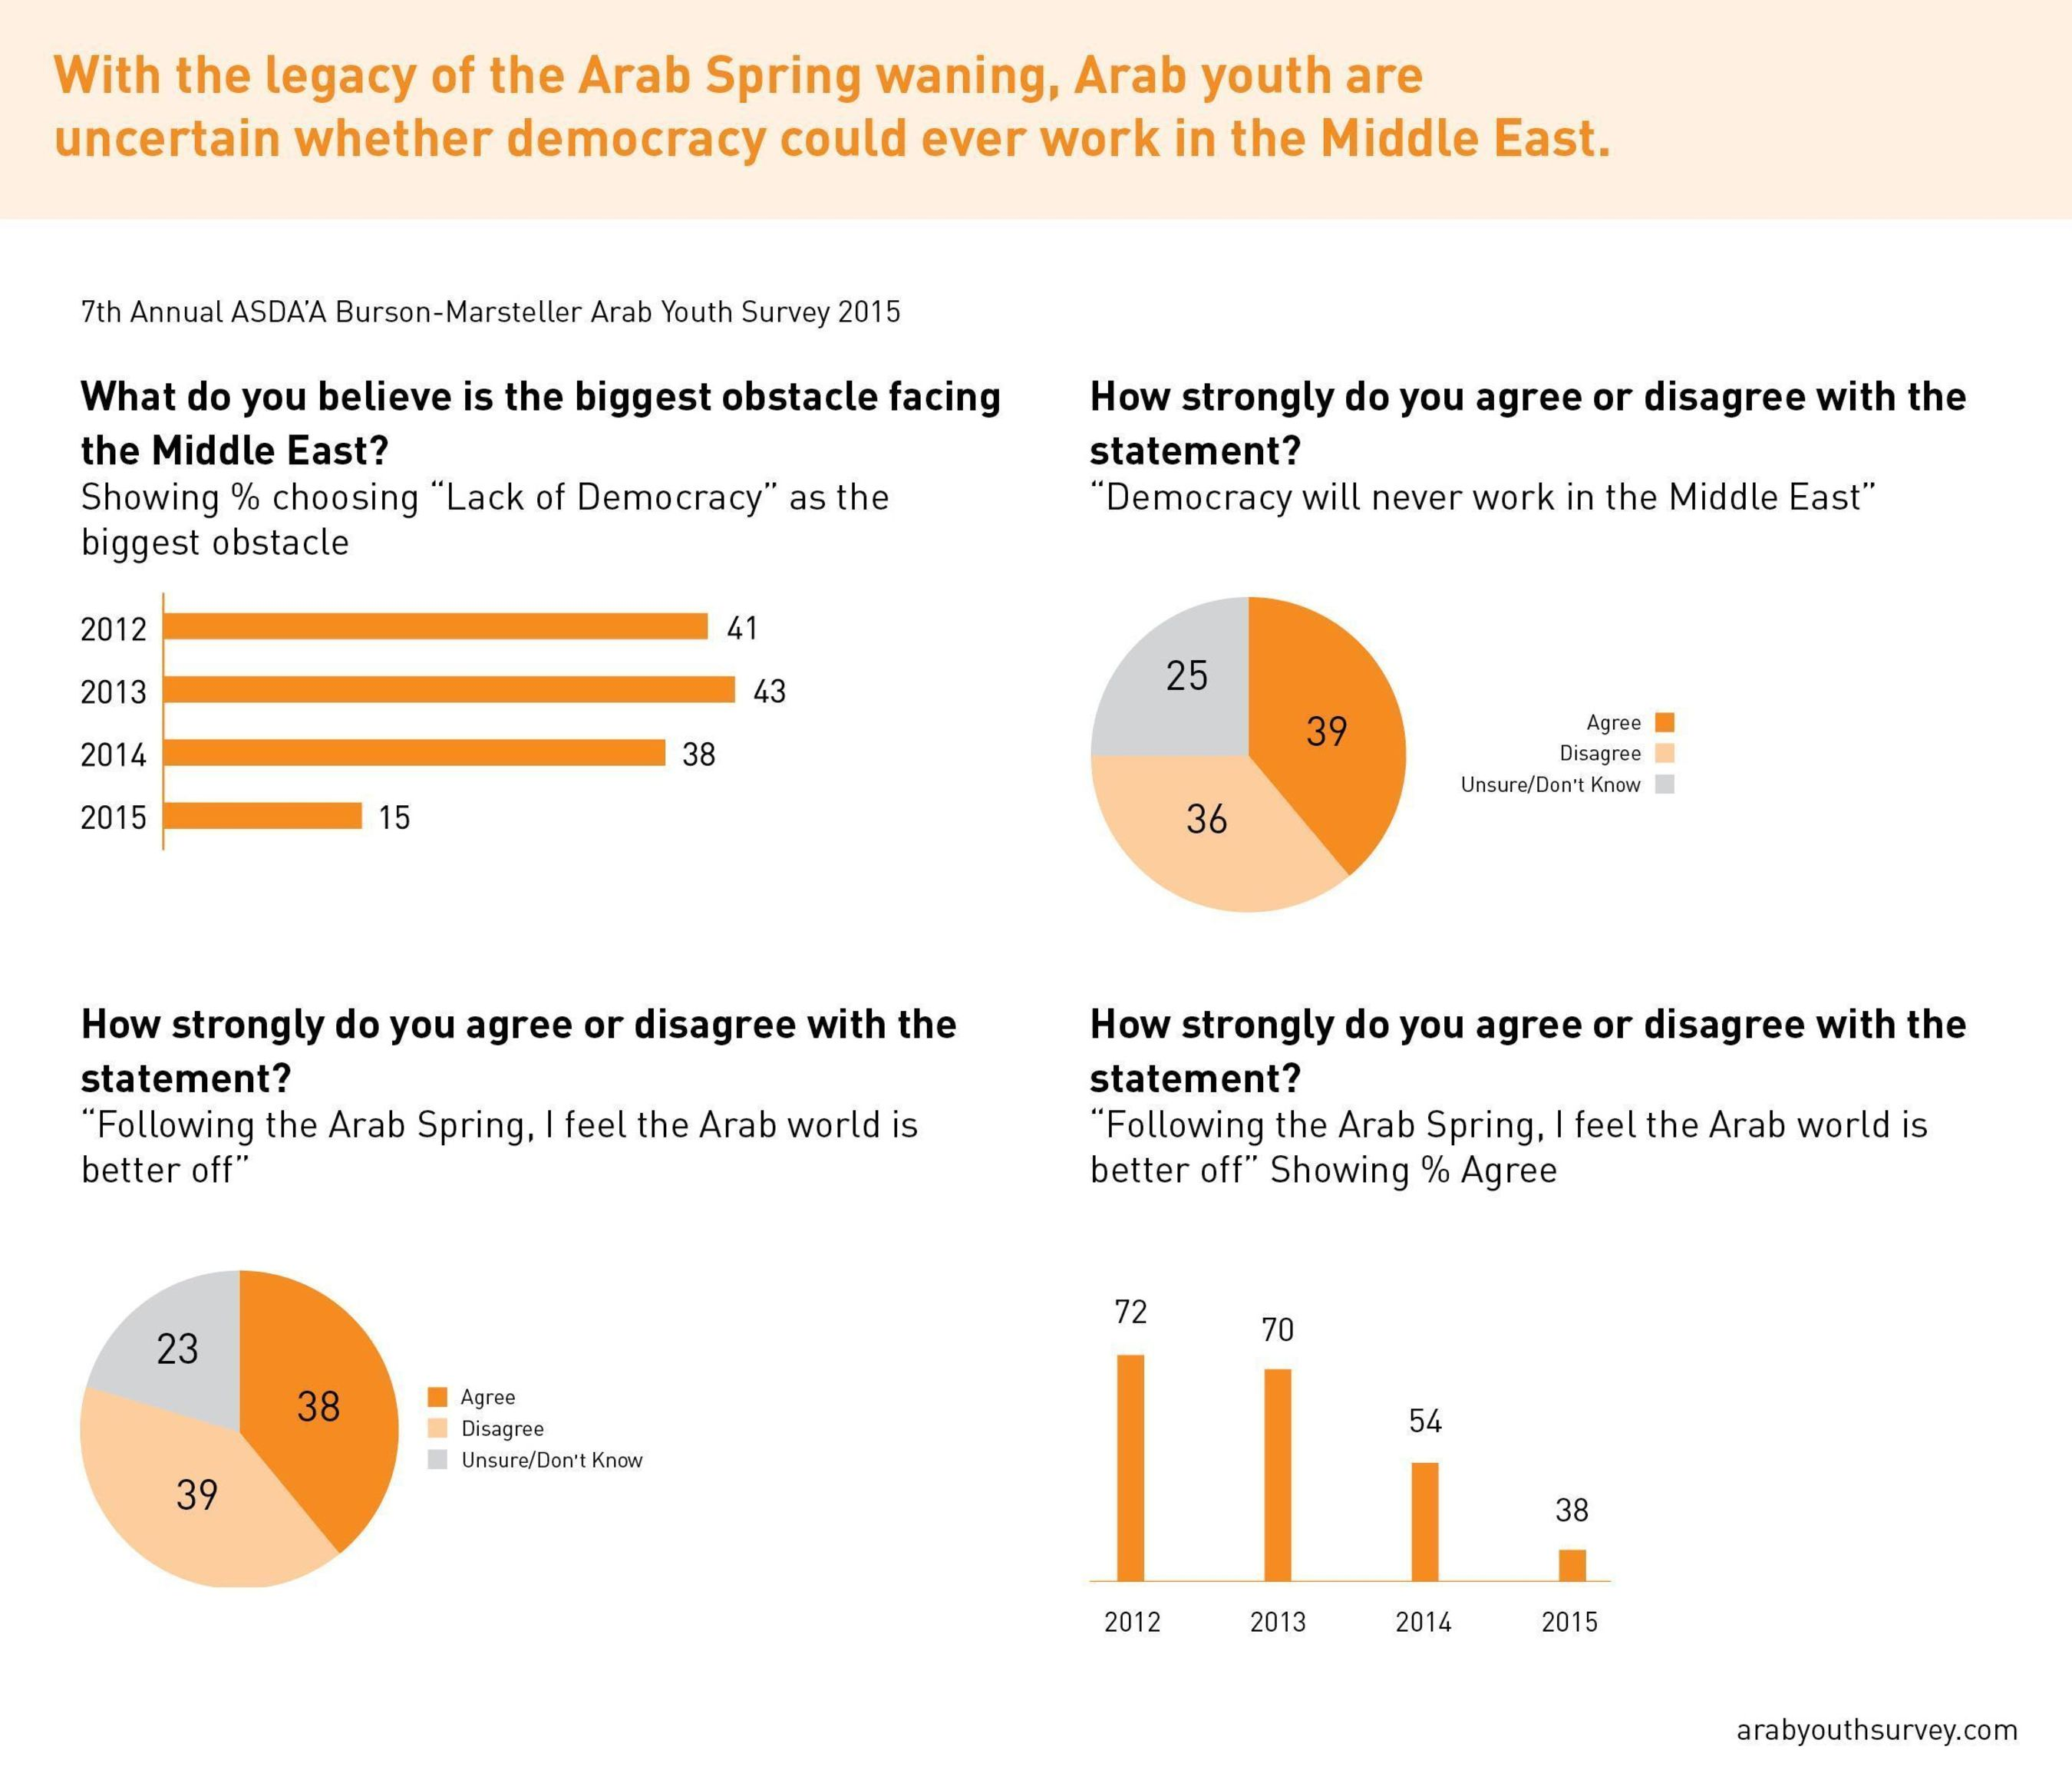 With the legacy of the Arab Spring waning, Arab youth are uncertain whether democracy could ever work in the ...